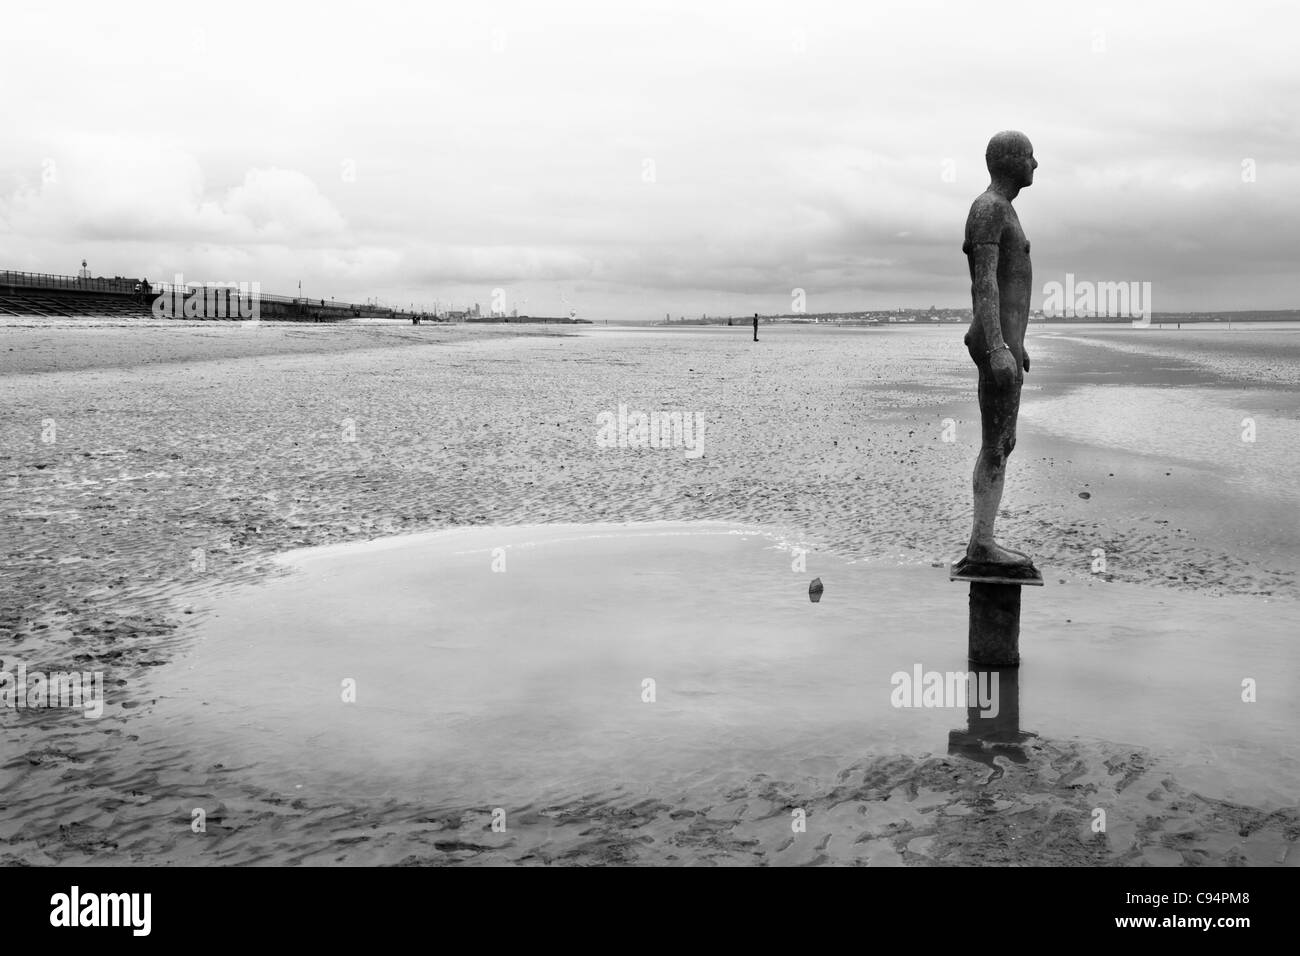 Antony Gormley's Another Place, Waterloo beach, Crosby, Merseyside, UK - Stock Image